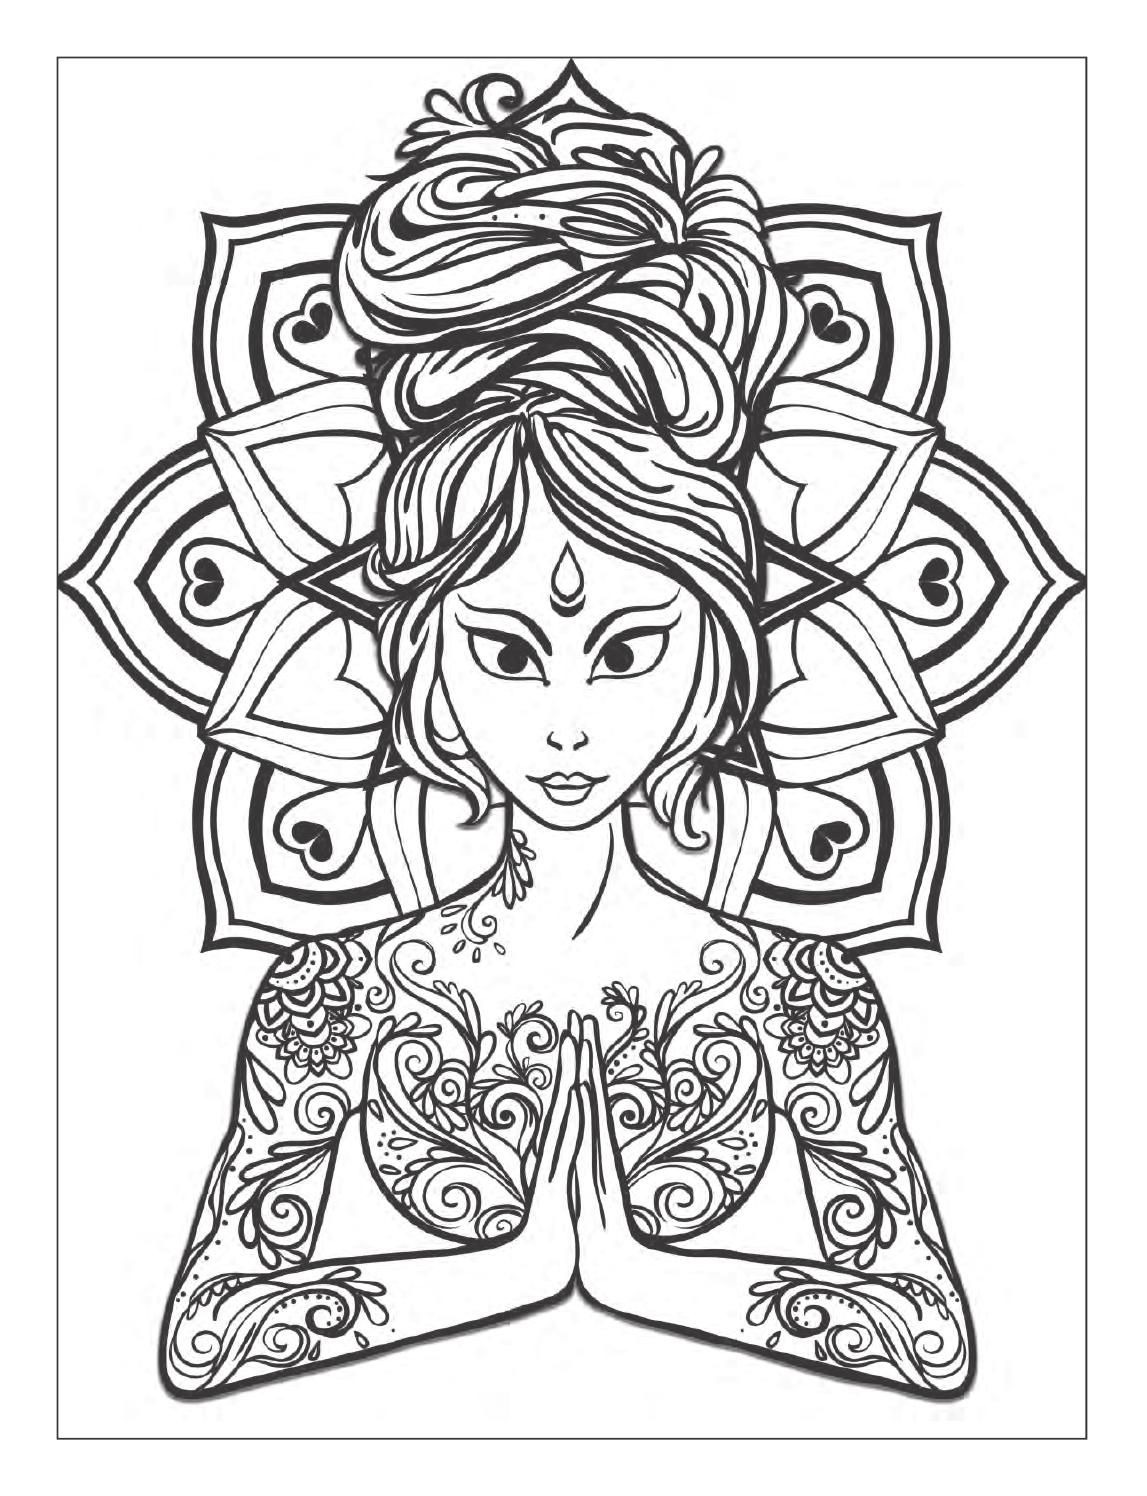 alexandru coloring pages - photo#20